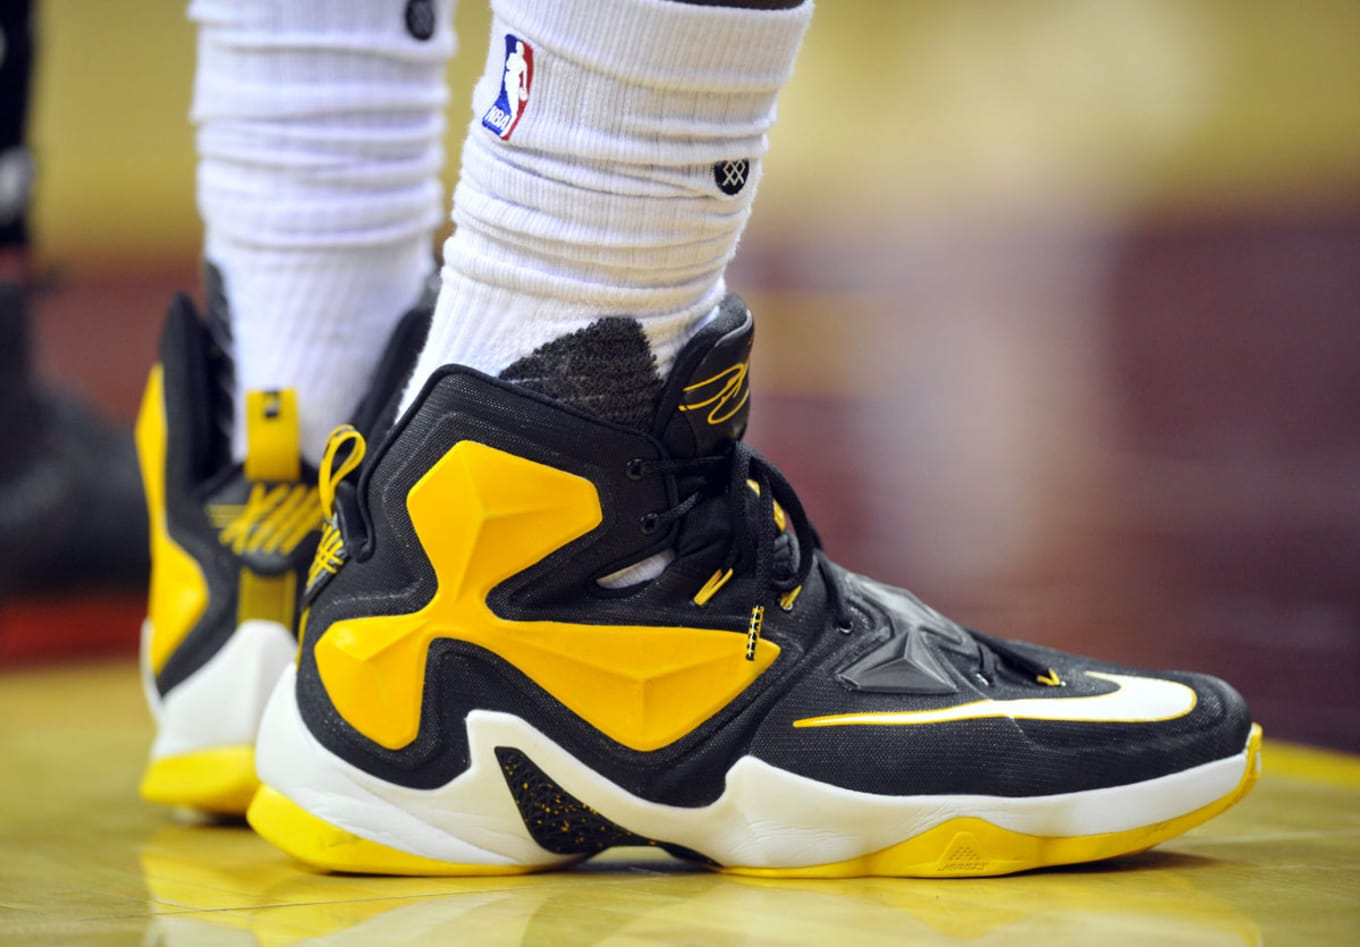 competitive price 611ef 1e94c ... where to buy lebron james wearing a black yellow white nike lebron 13  pe 3f35e eccc2